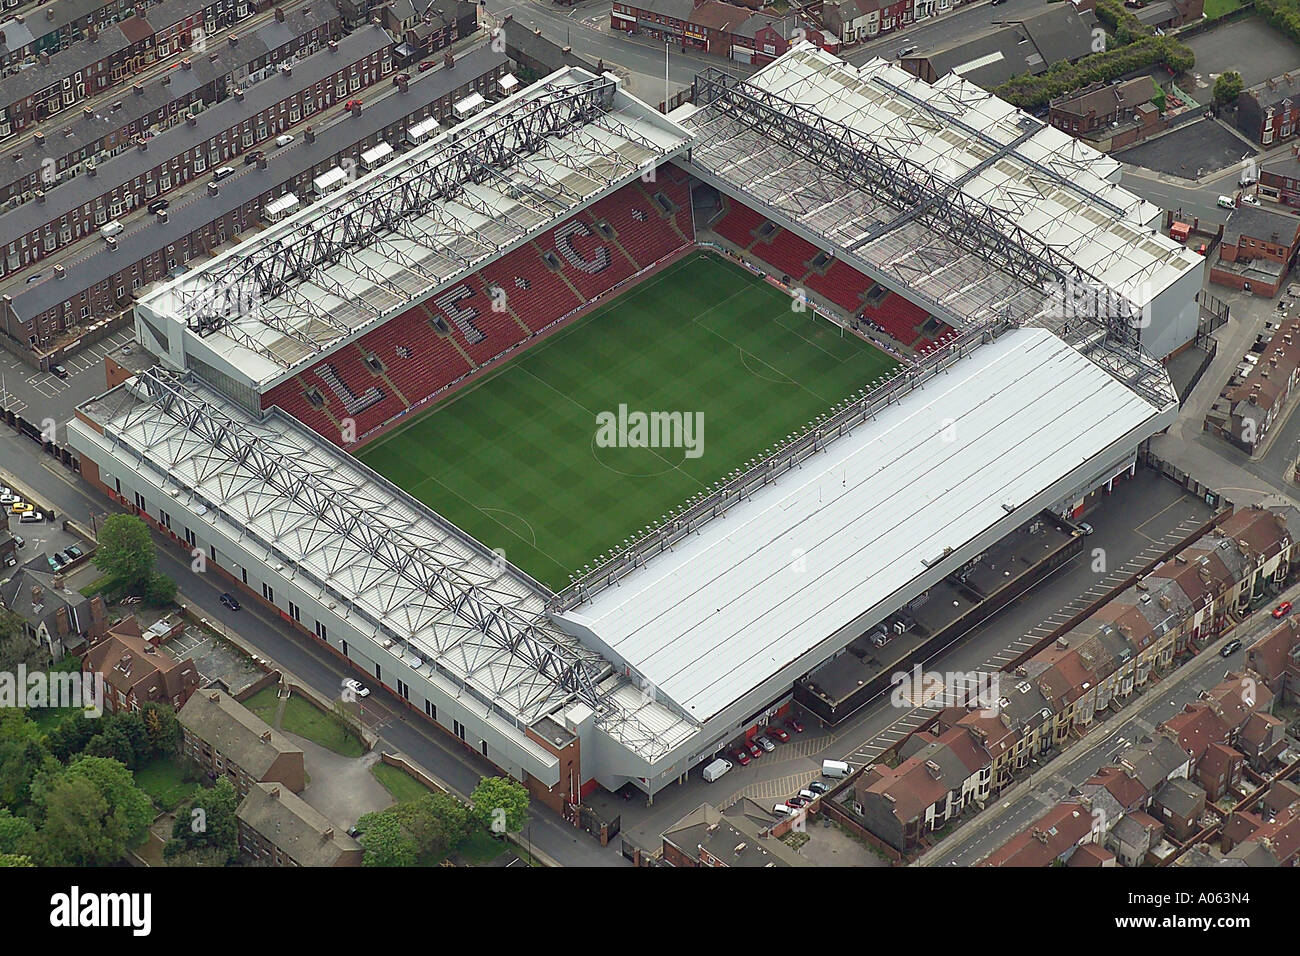 Aerial view of Liverpool Football Club who play at Anfield Stadium in Liverpool and are known as the Reds - Stock Image